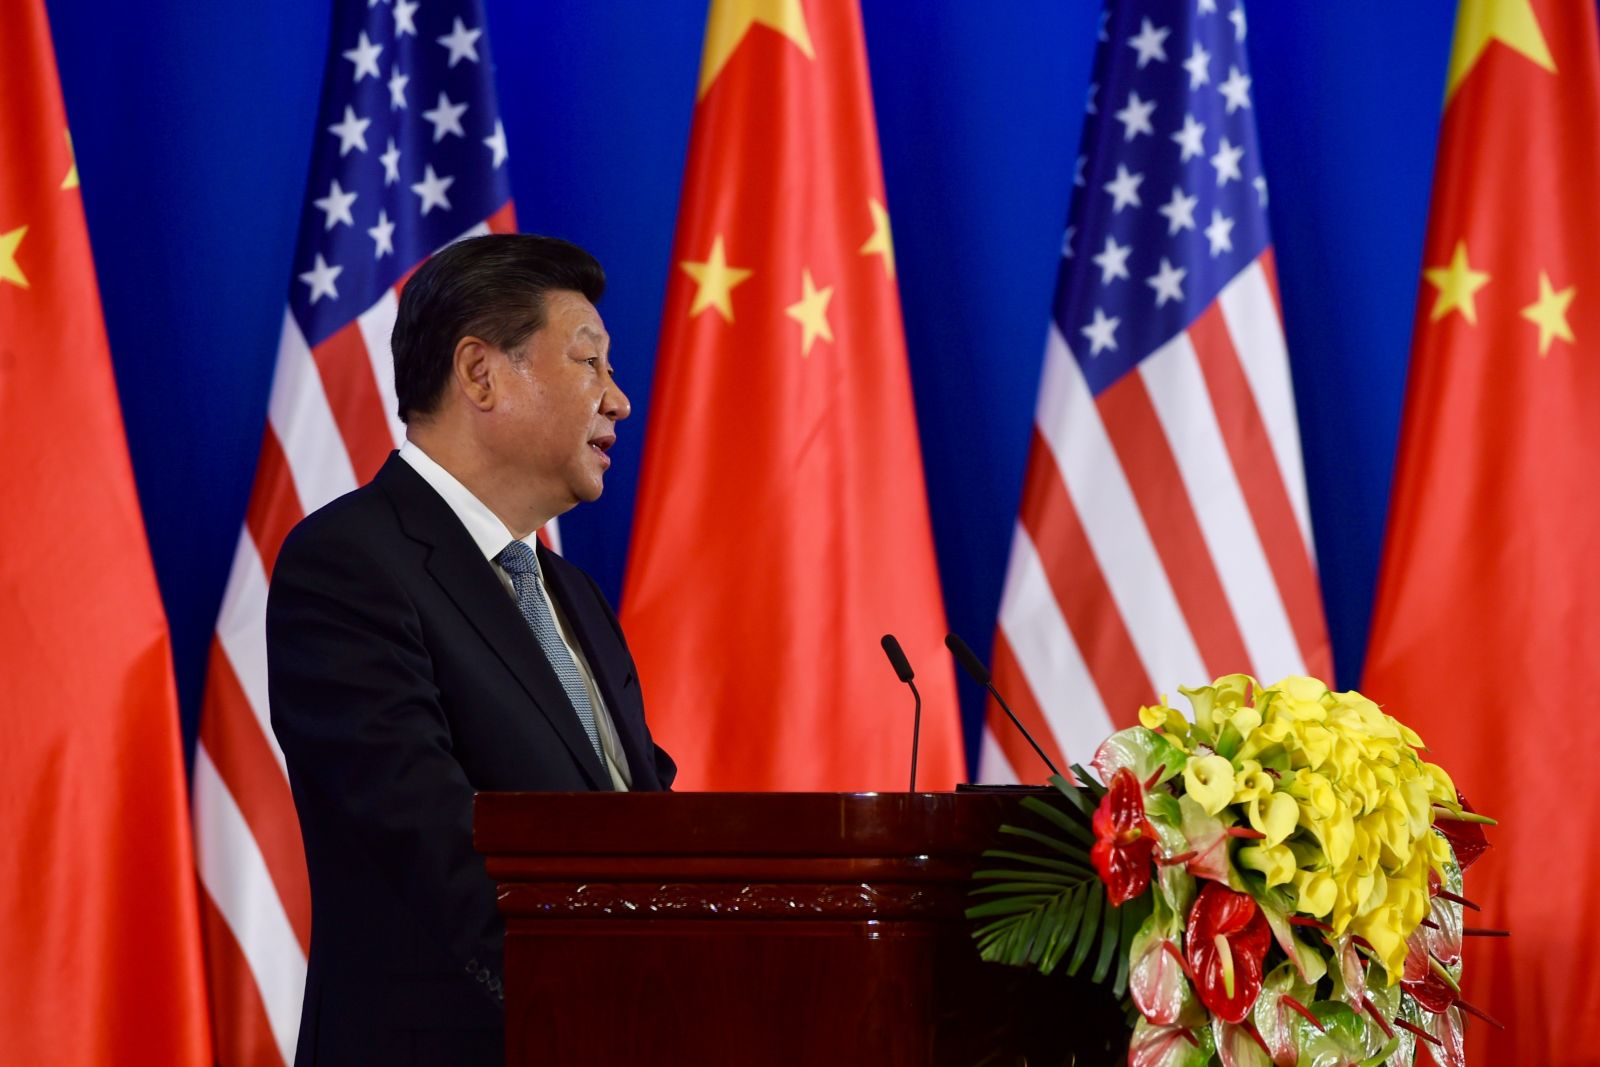 Chinese_President_Xi_Addresses_the_Opening_Session_of_the_U.S.-China_Strategic_Dialogue_in_Beijing_(27544686235).jpg